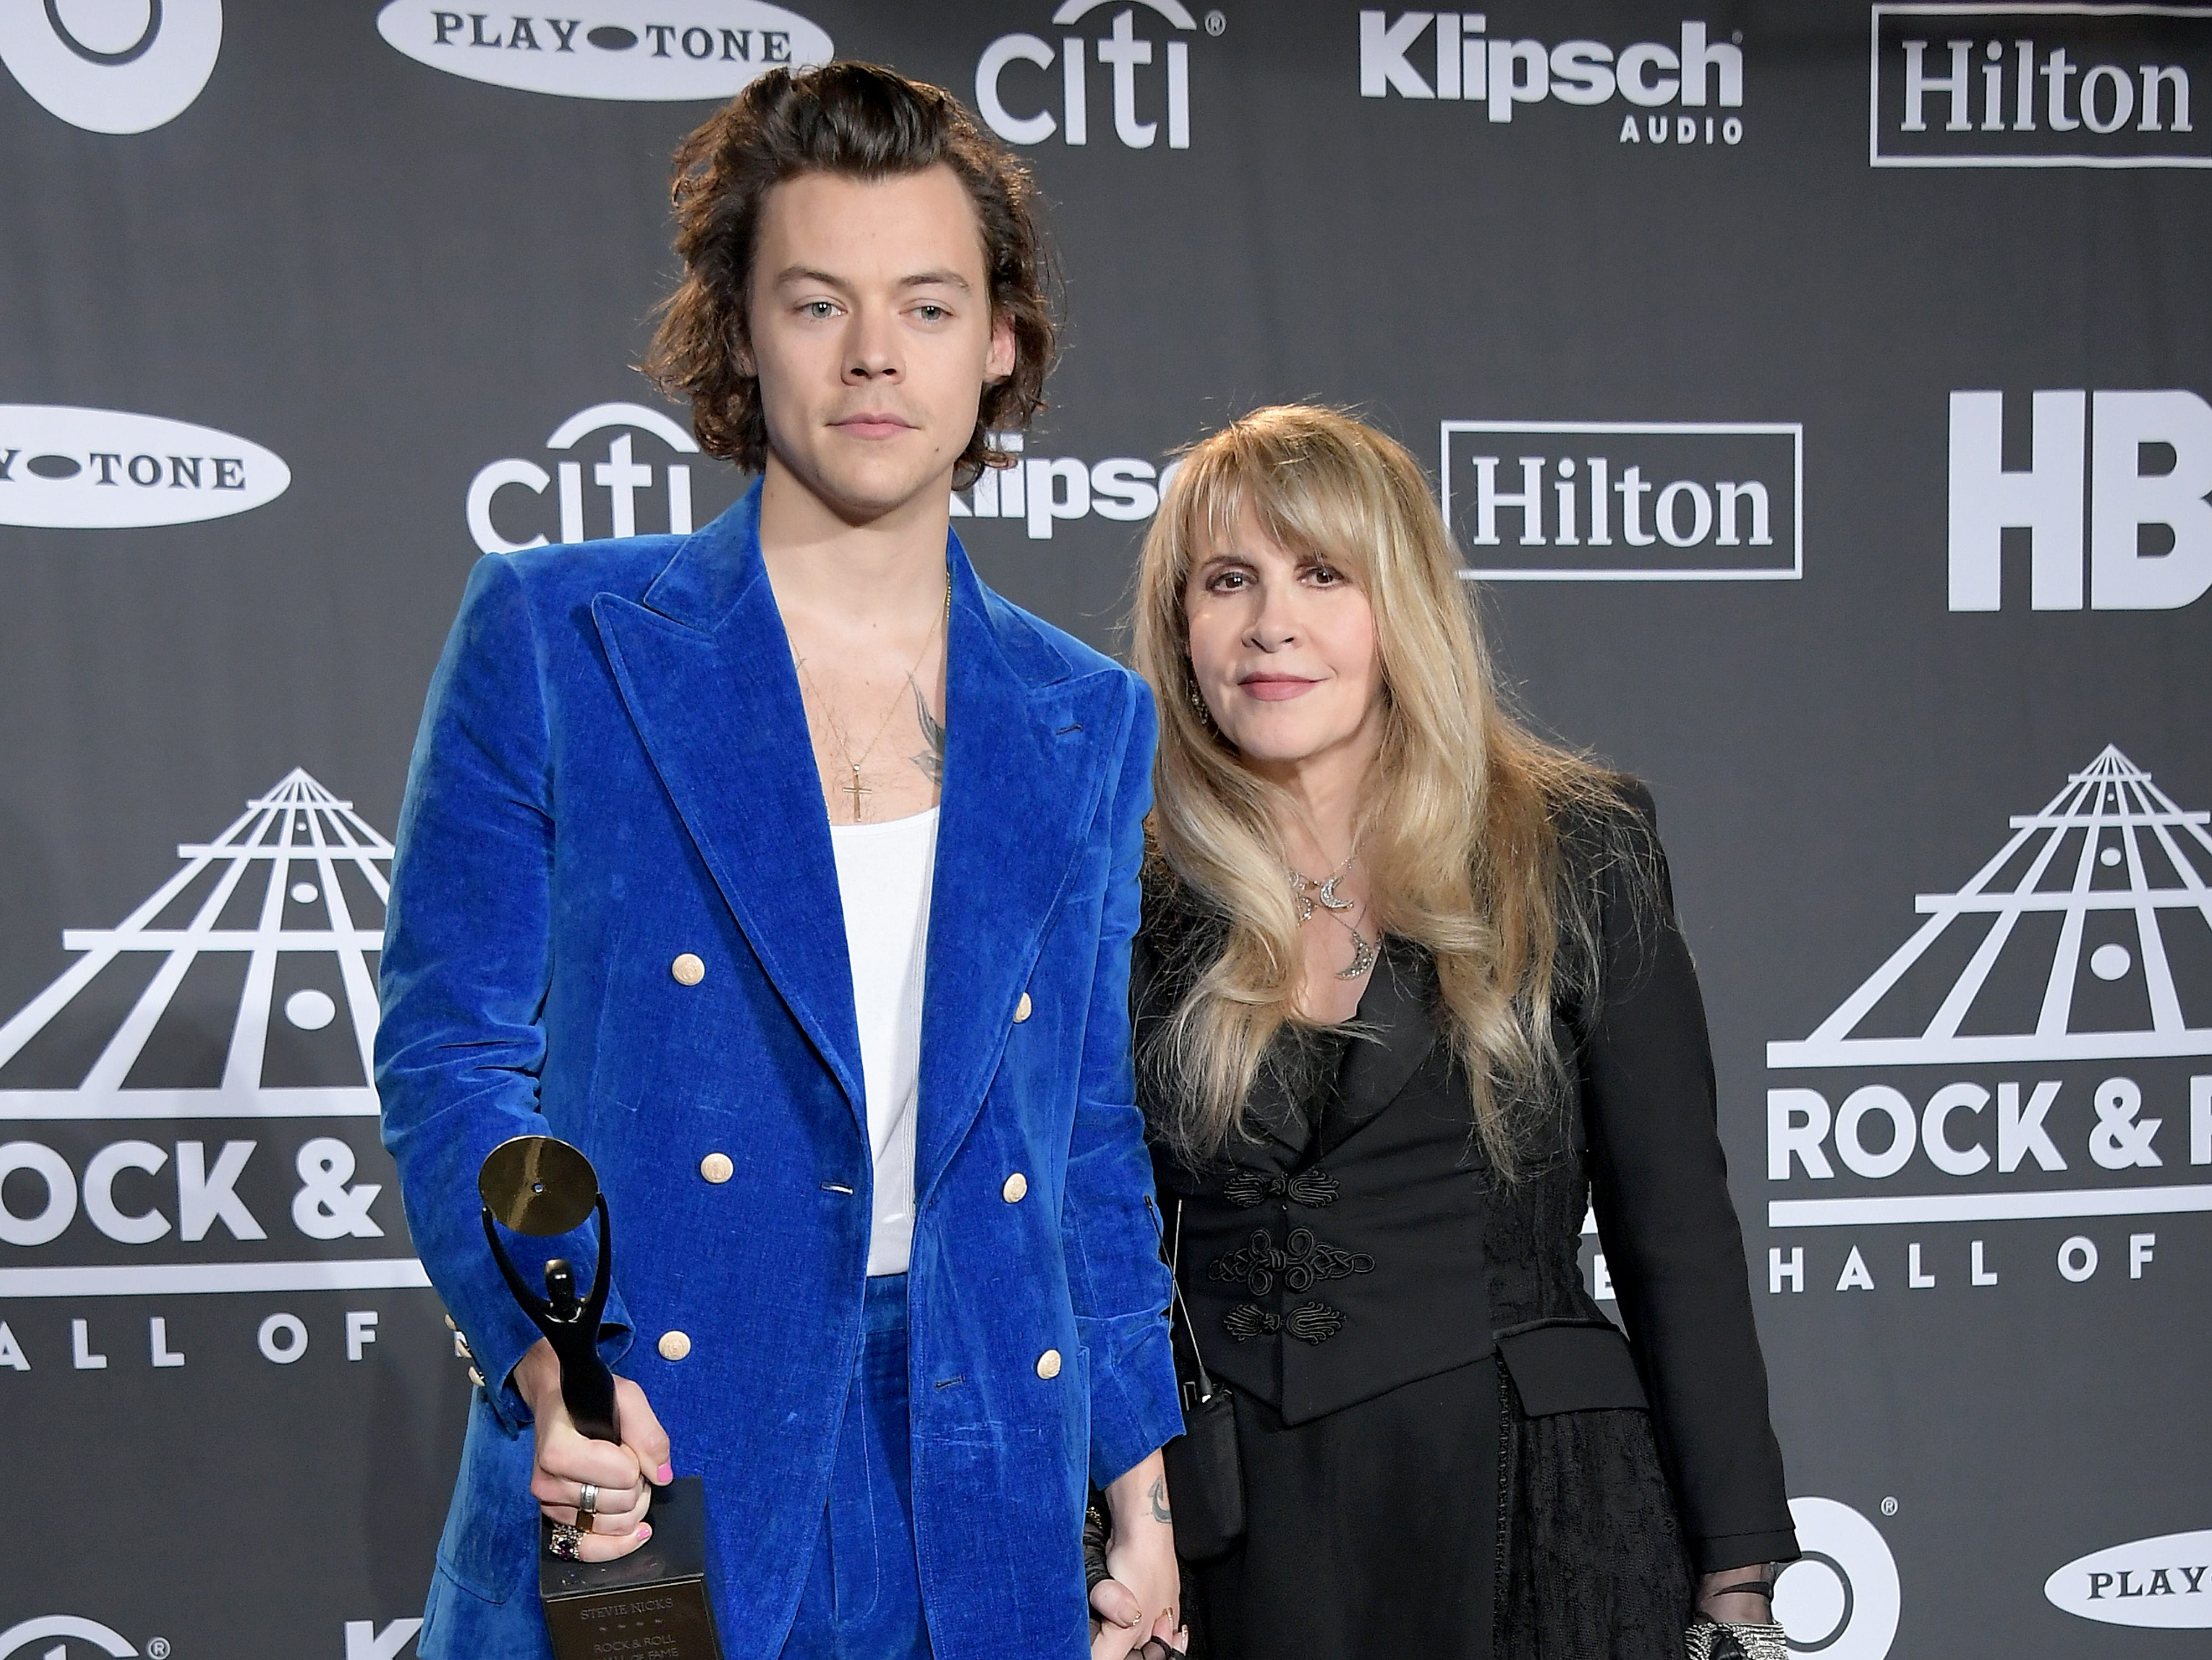 NEW YORK, NEW YORK - MARCH 29: Harry Styles and inductee Stevie Nicks pose in the press room during the 2019 Rock & Roll Hall Of Fame Induction Ceremony - Press Room at Barclays Center on March 29, 2019 in New York City. (Photo by Michael Loccisano/Getty Images For The Rock and Roll Hall of Fame) ORG XMIT: 775320669 ORIG FILE ID: 1139177972